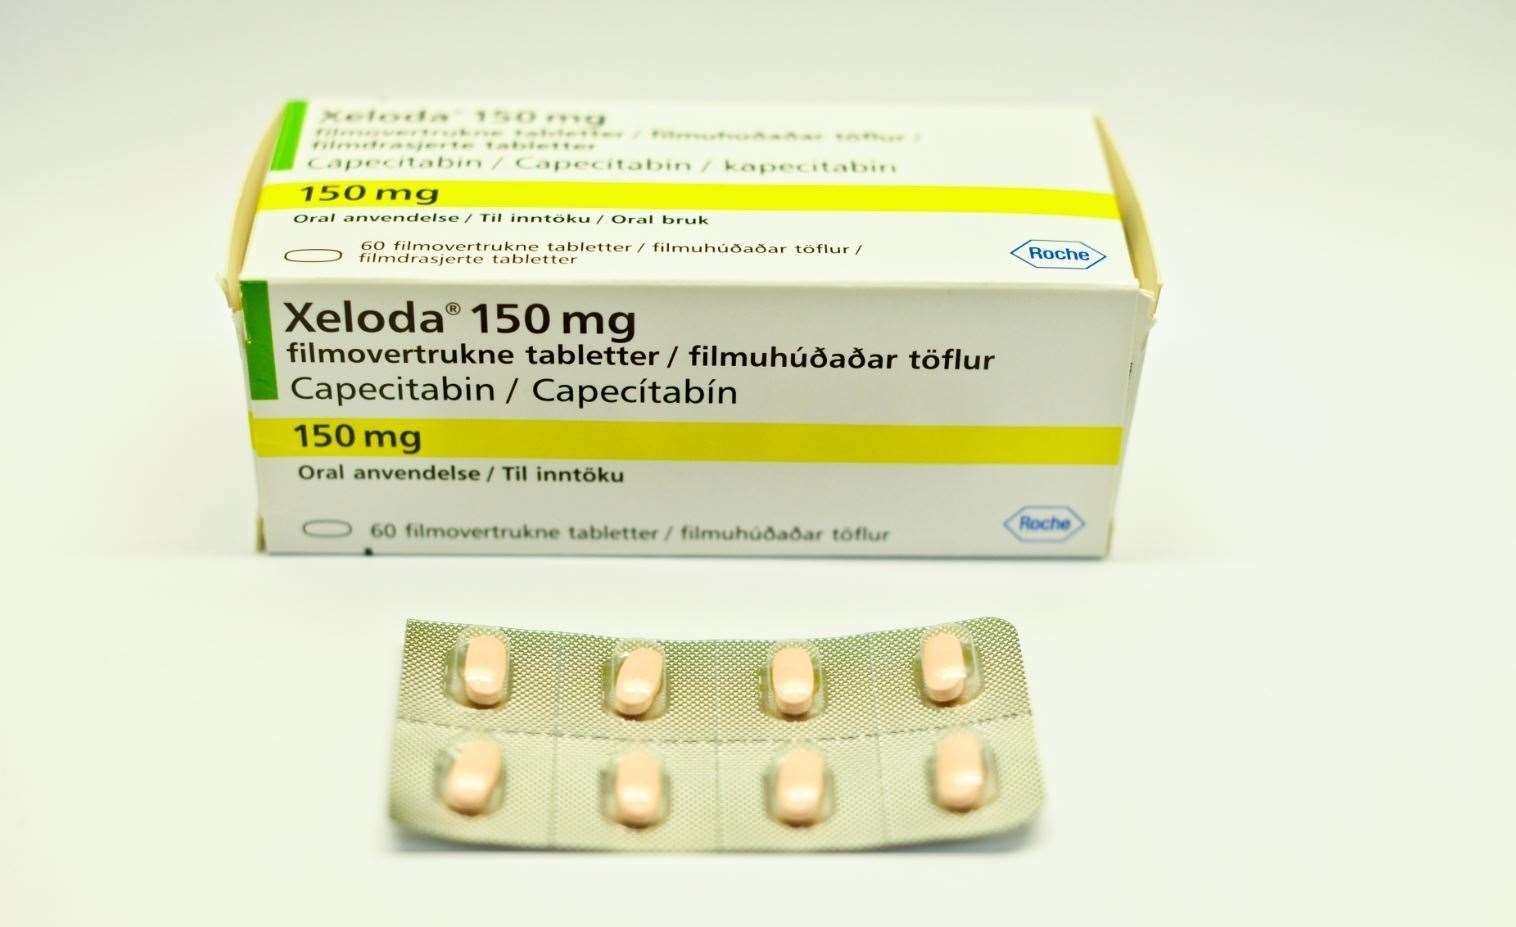 Capecitabine, sold under the brand name Xeloda among others, is a chemotherapy medication. Credit: Flickr - Haukeland universitetssjukehus. Creative Commons license. (8383768)